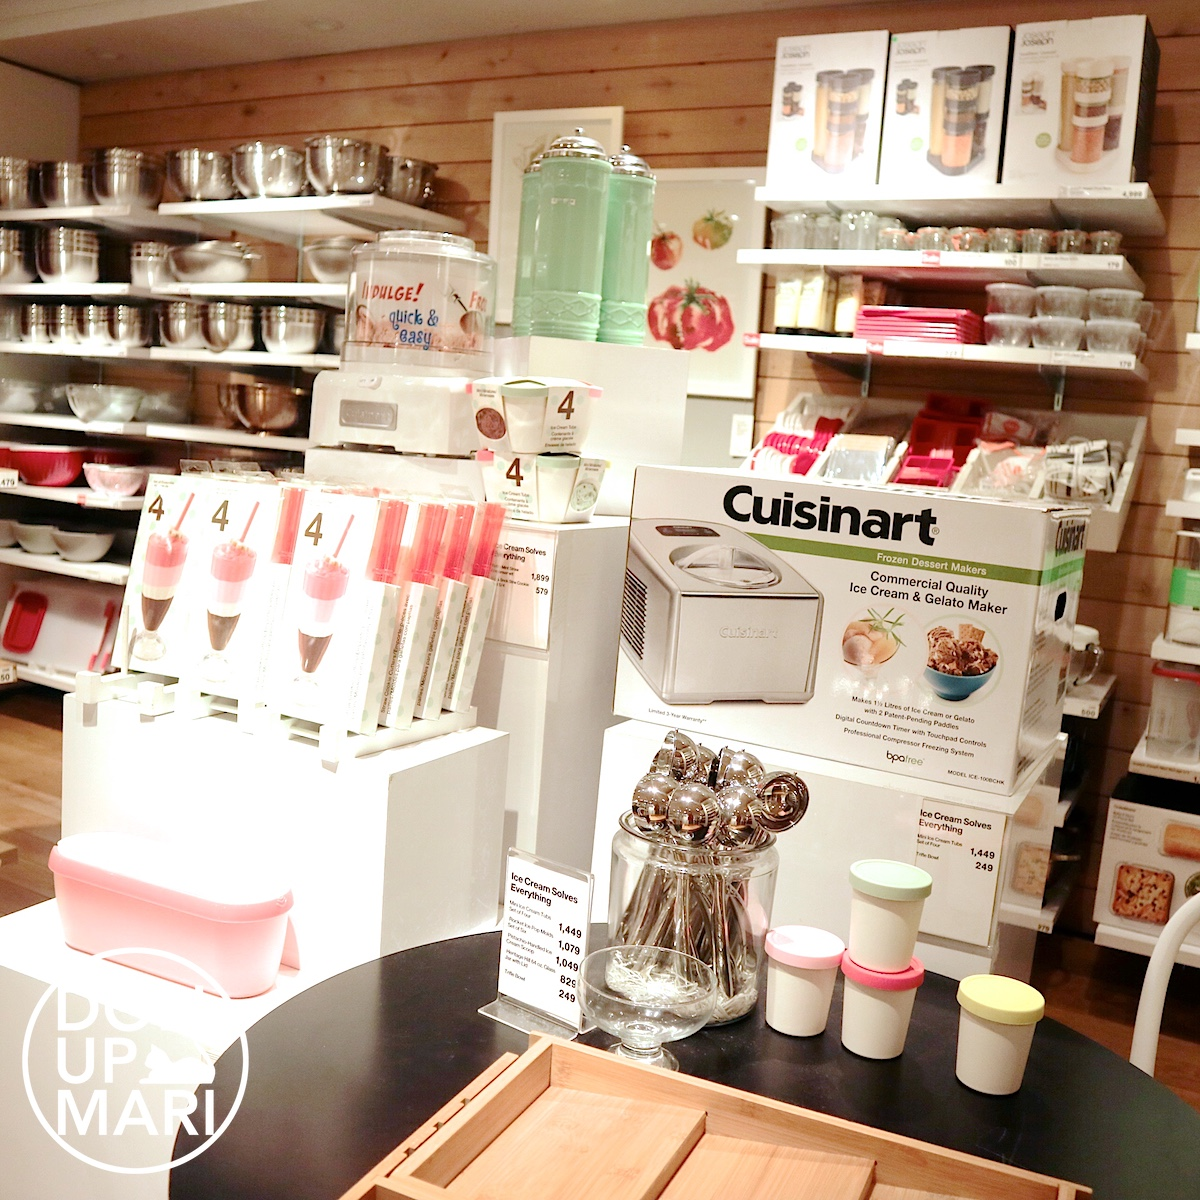 Crate and Barrel Scoopers, Cups, and Cuisinart Ice Cream Maker